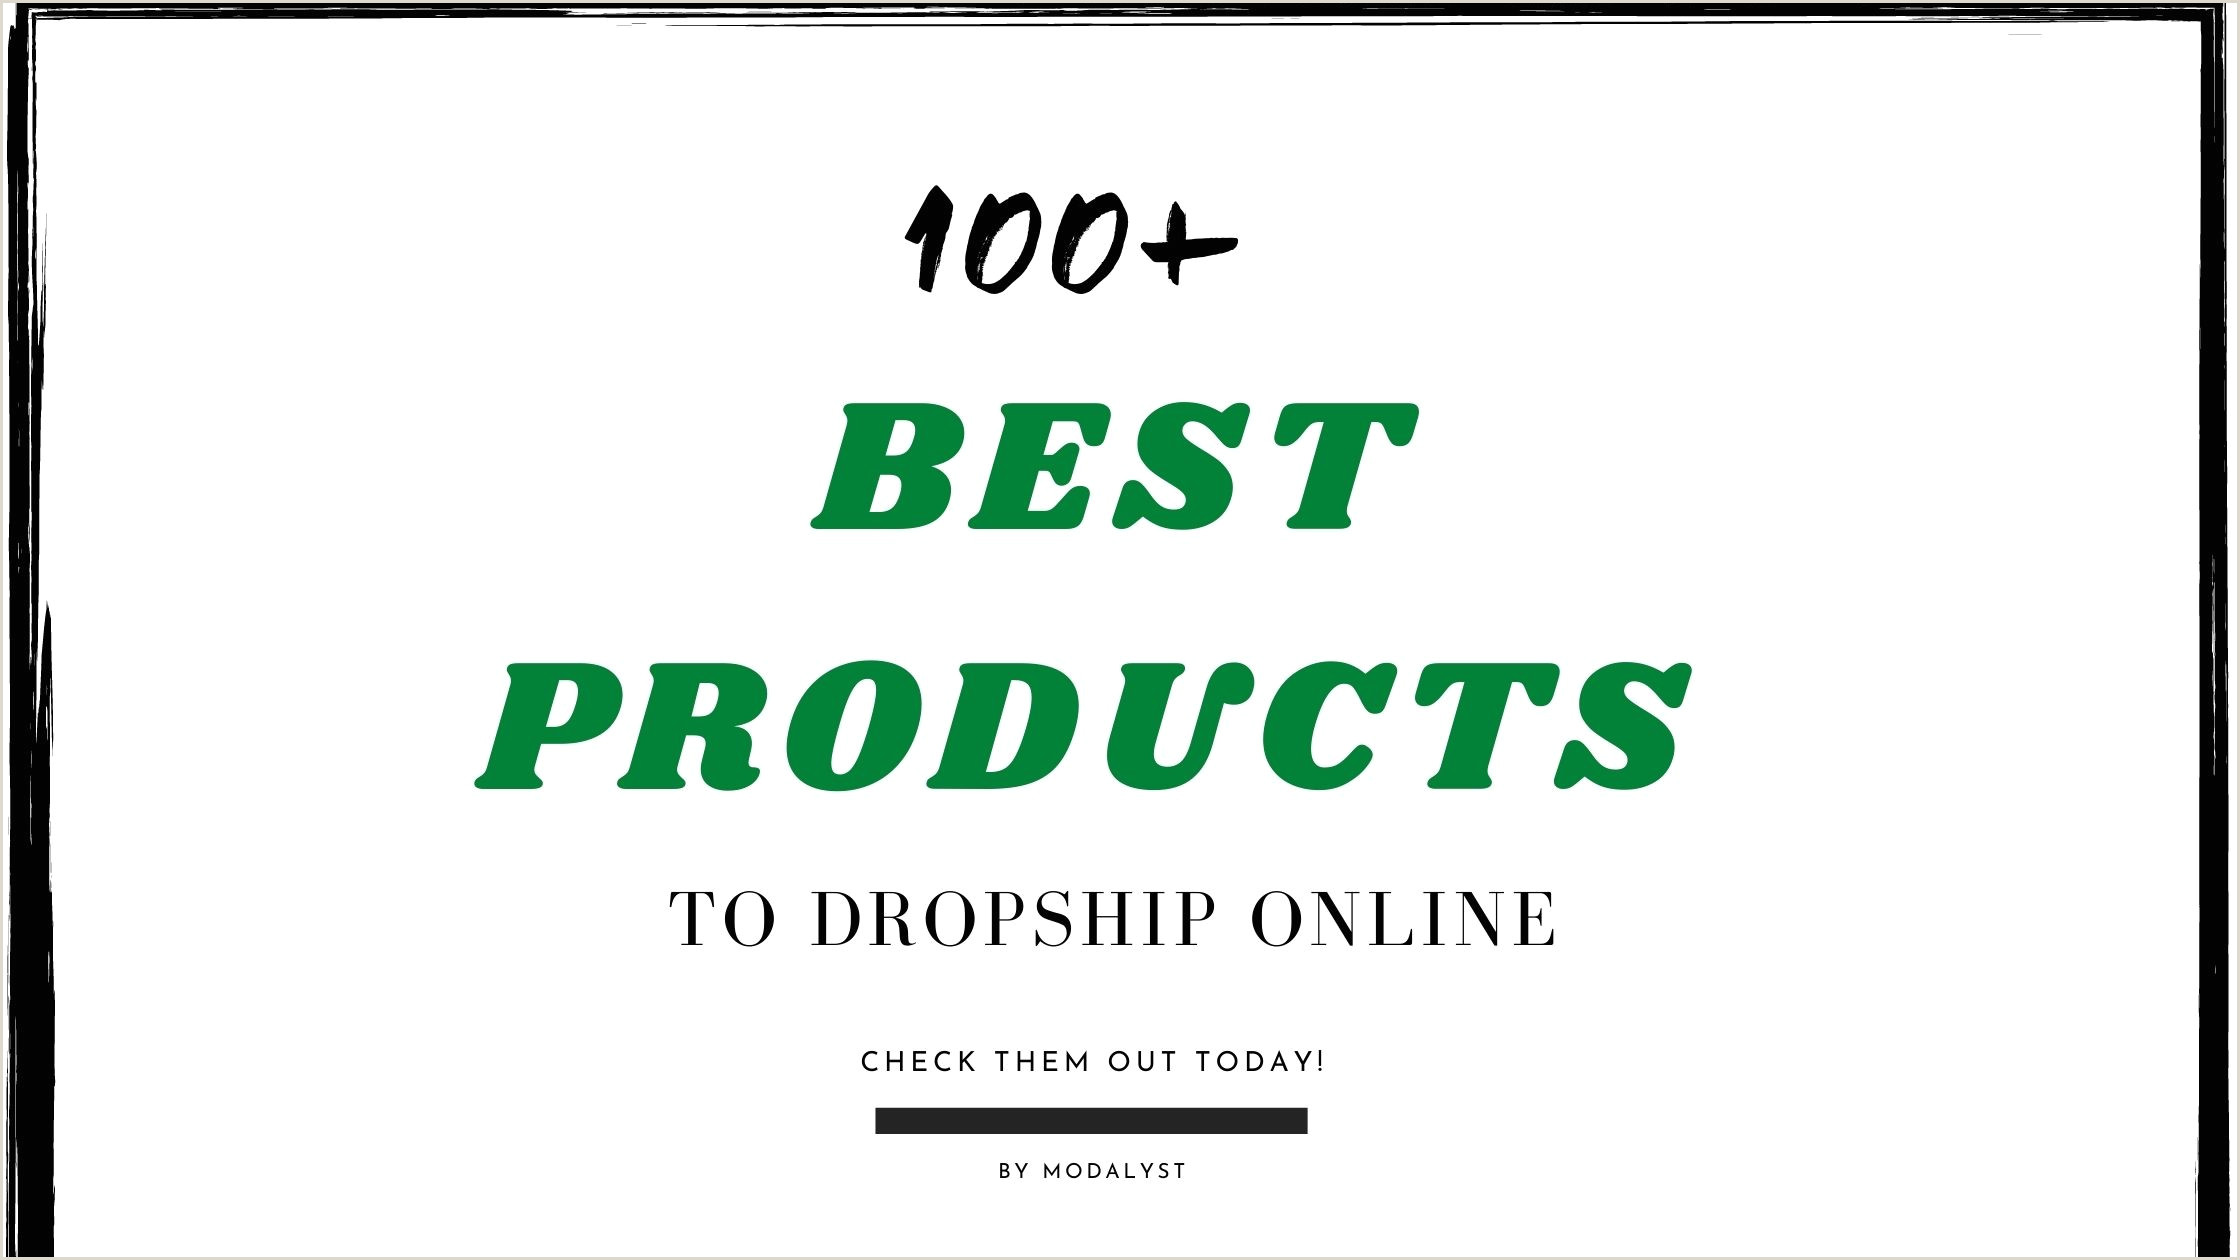 100 Best Business Cards 100 Best Products To Dropship In 2020 Modalyst